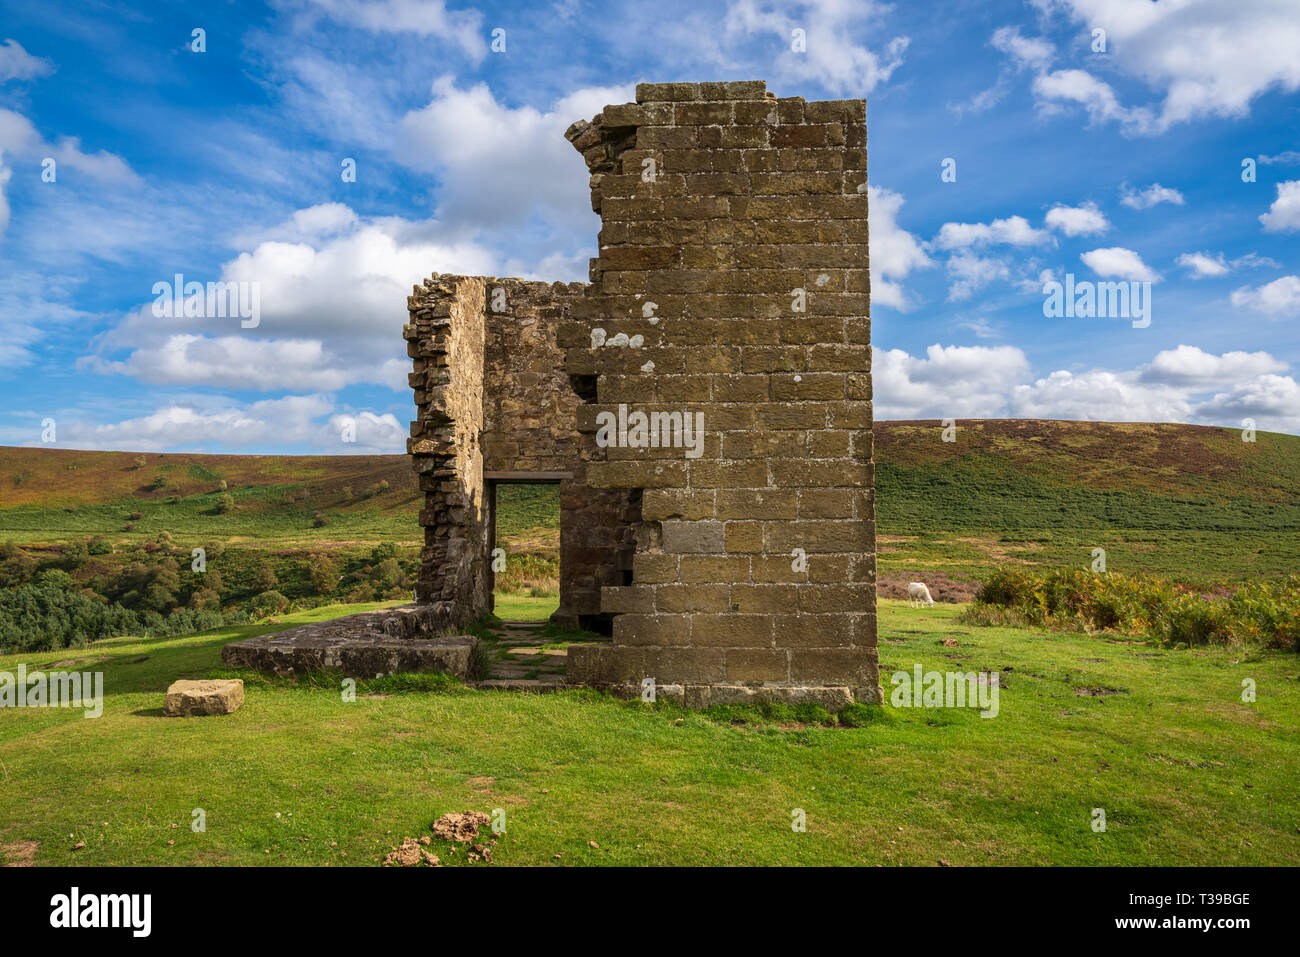 North York Moors landscape, looking at Skelton Tower, seen from the Levisham Moor, North Yorkshire, England, UK - Stock Image